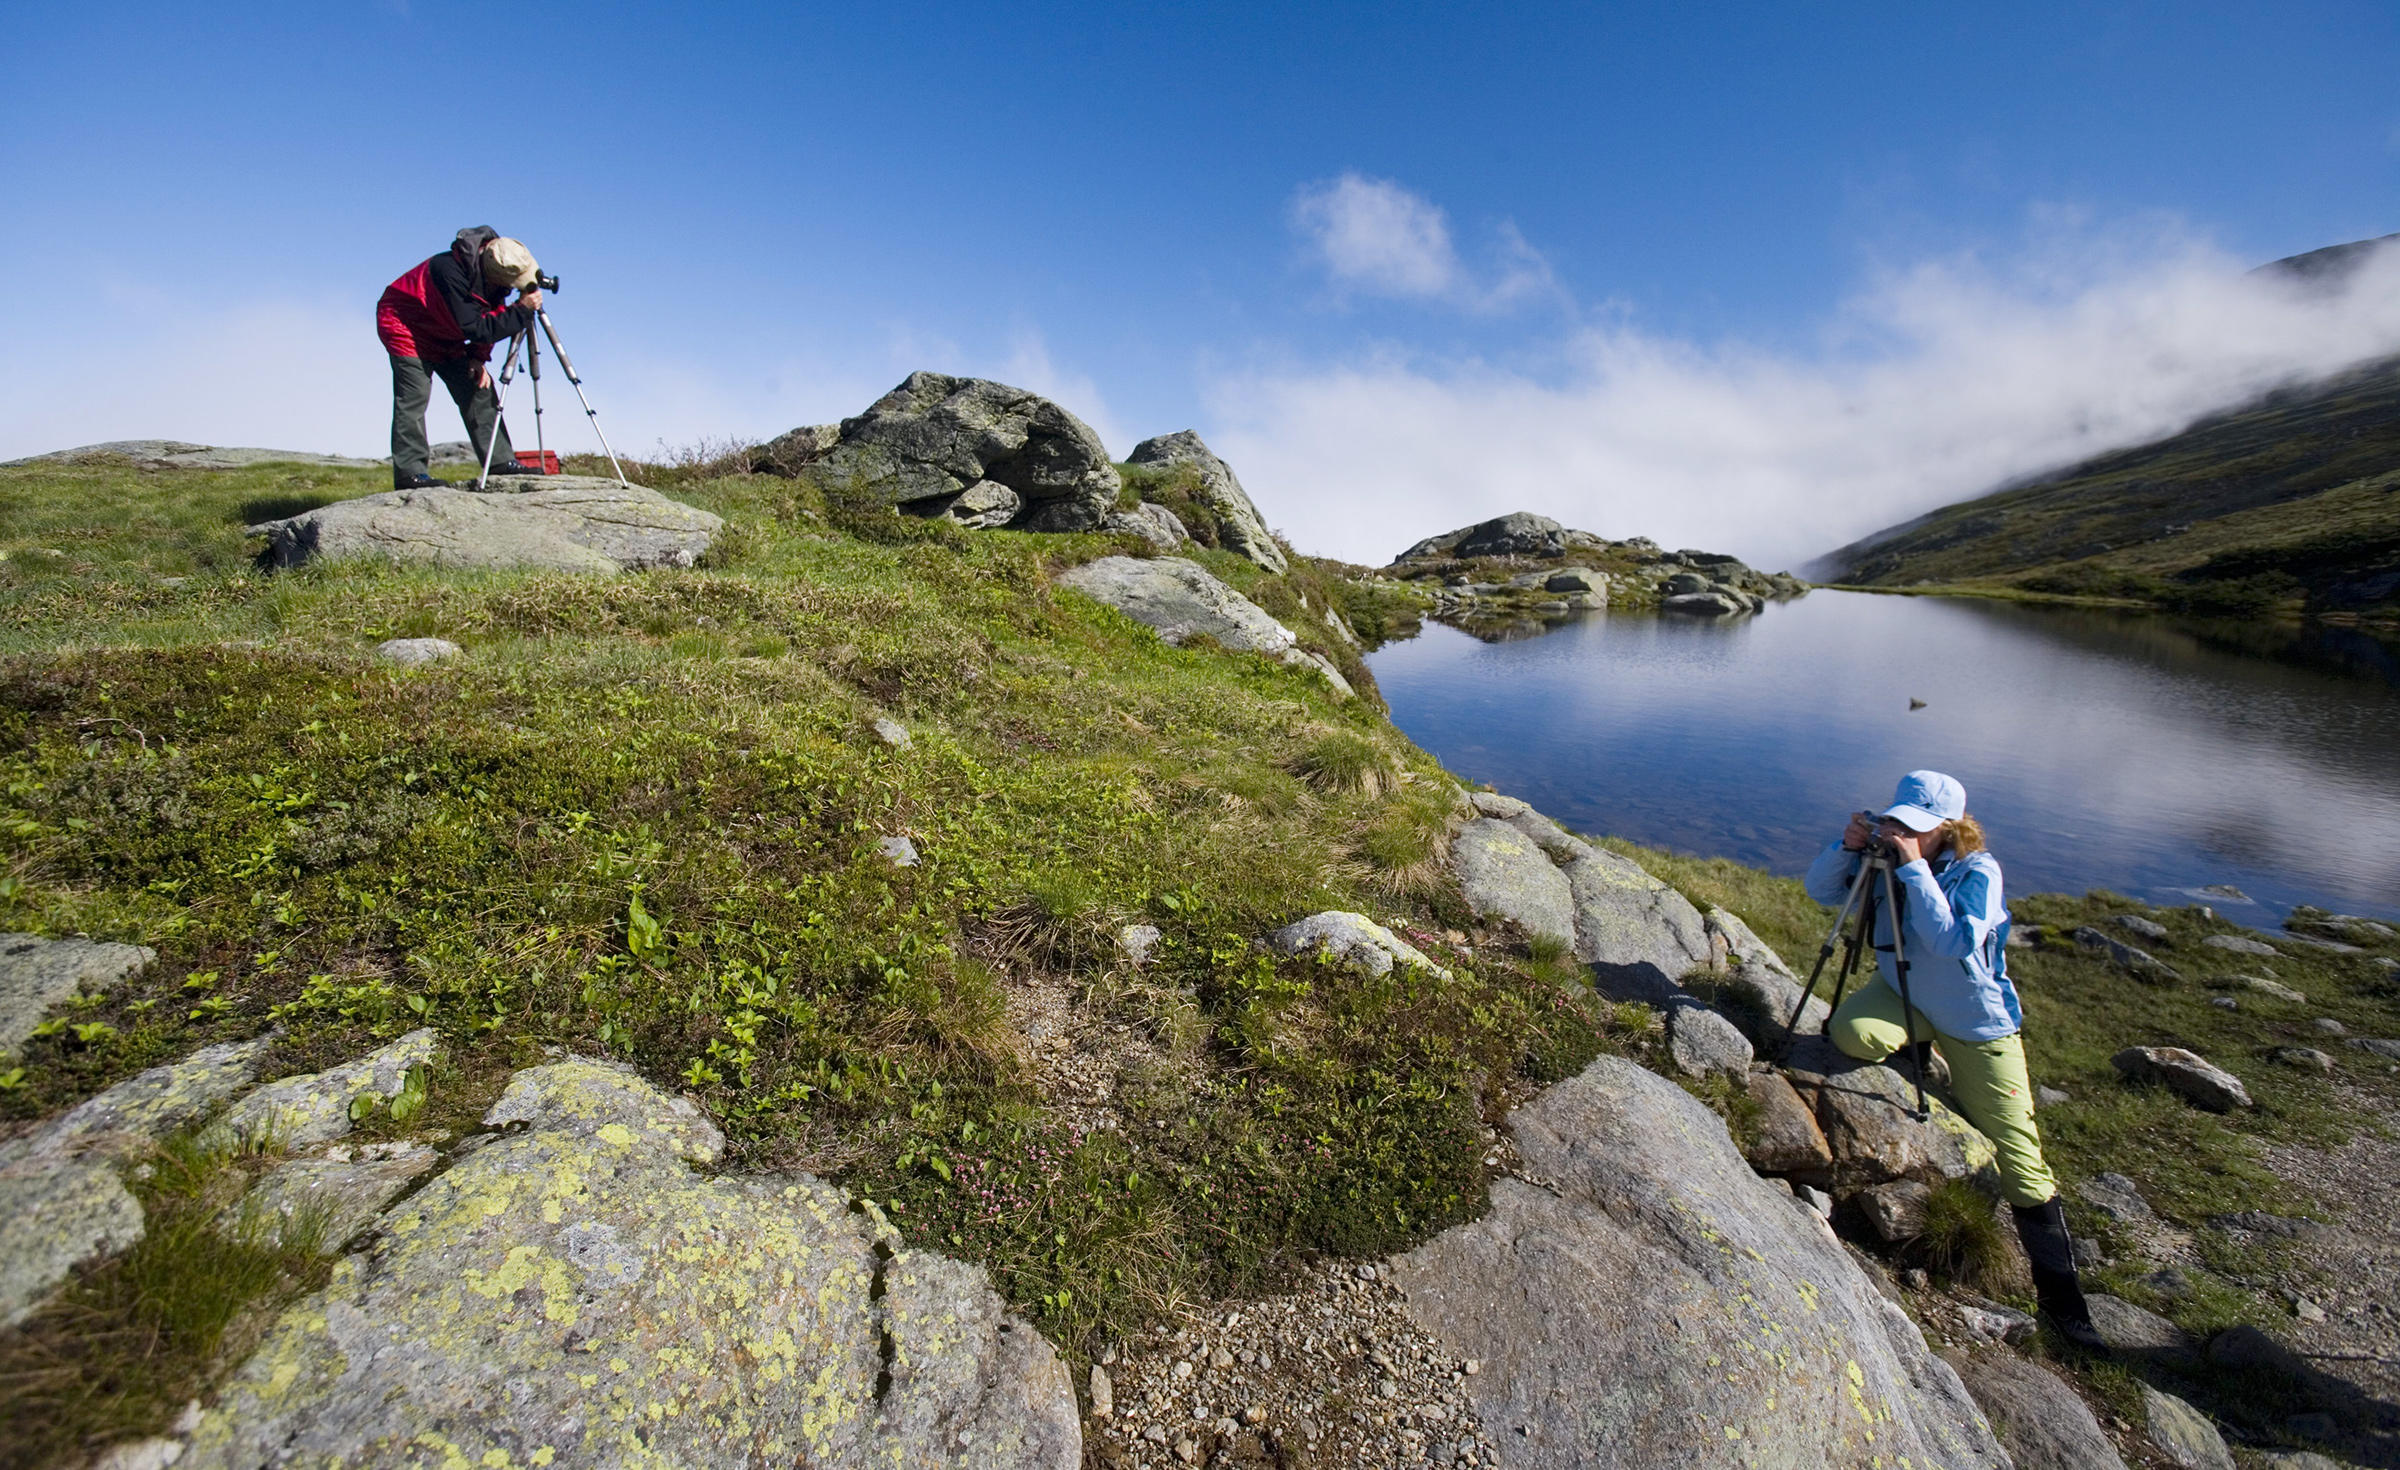 Between Mount Washington and Mount Monroe in New Hampshire's White Mountains. Jerry & Marcy Monkman/EcoPhotography